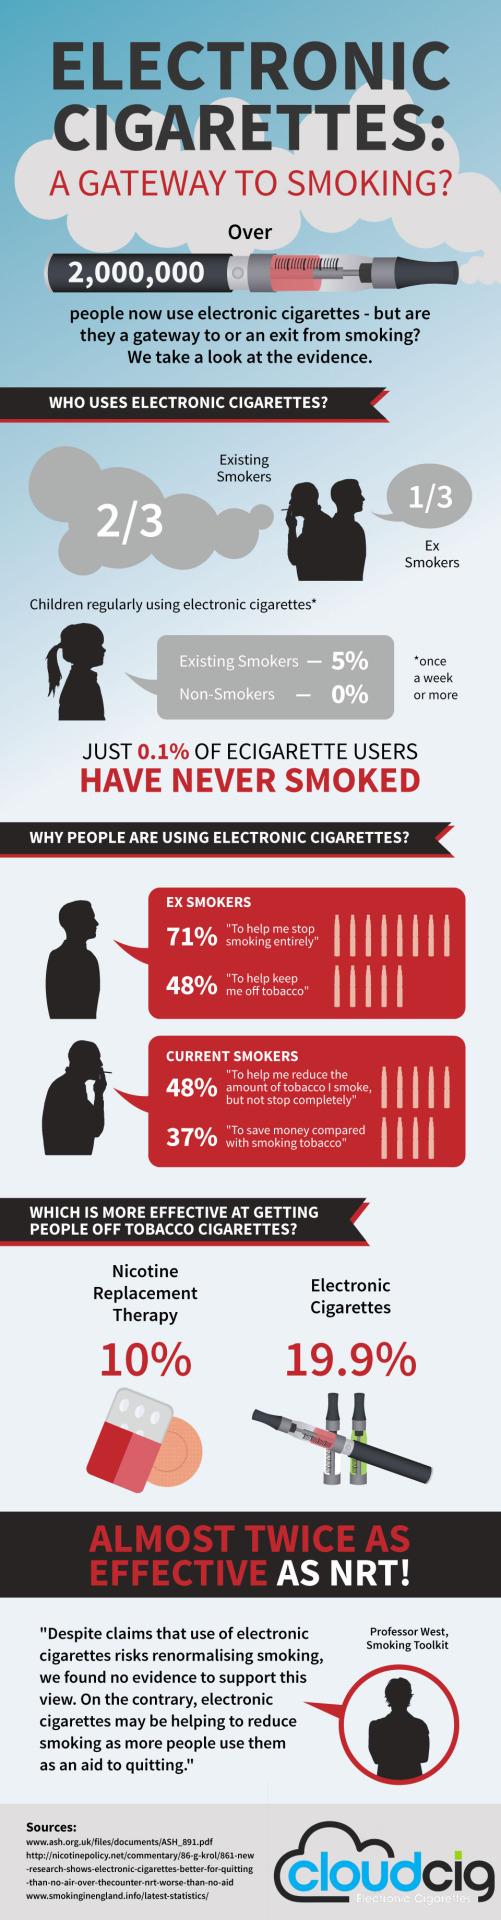 electronic-cigarettes-infographic